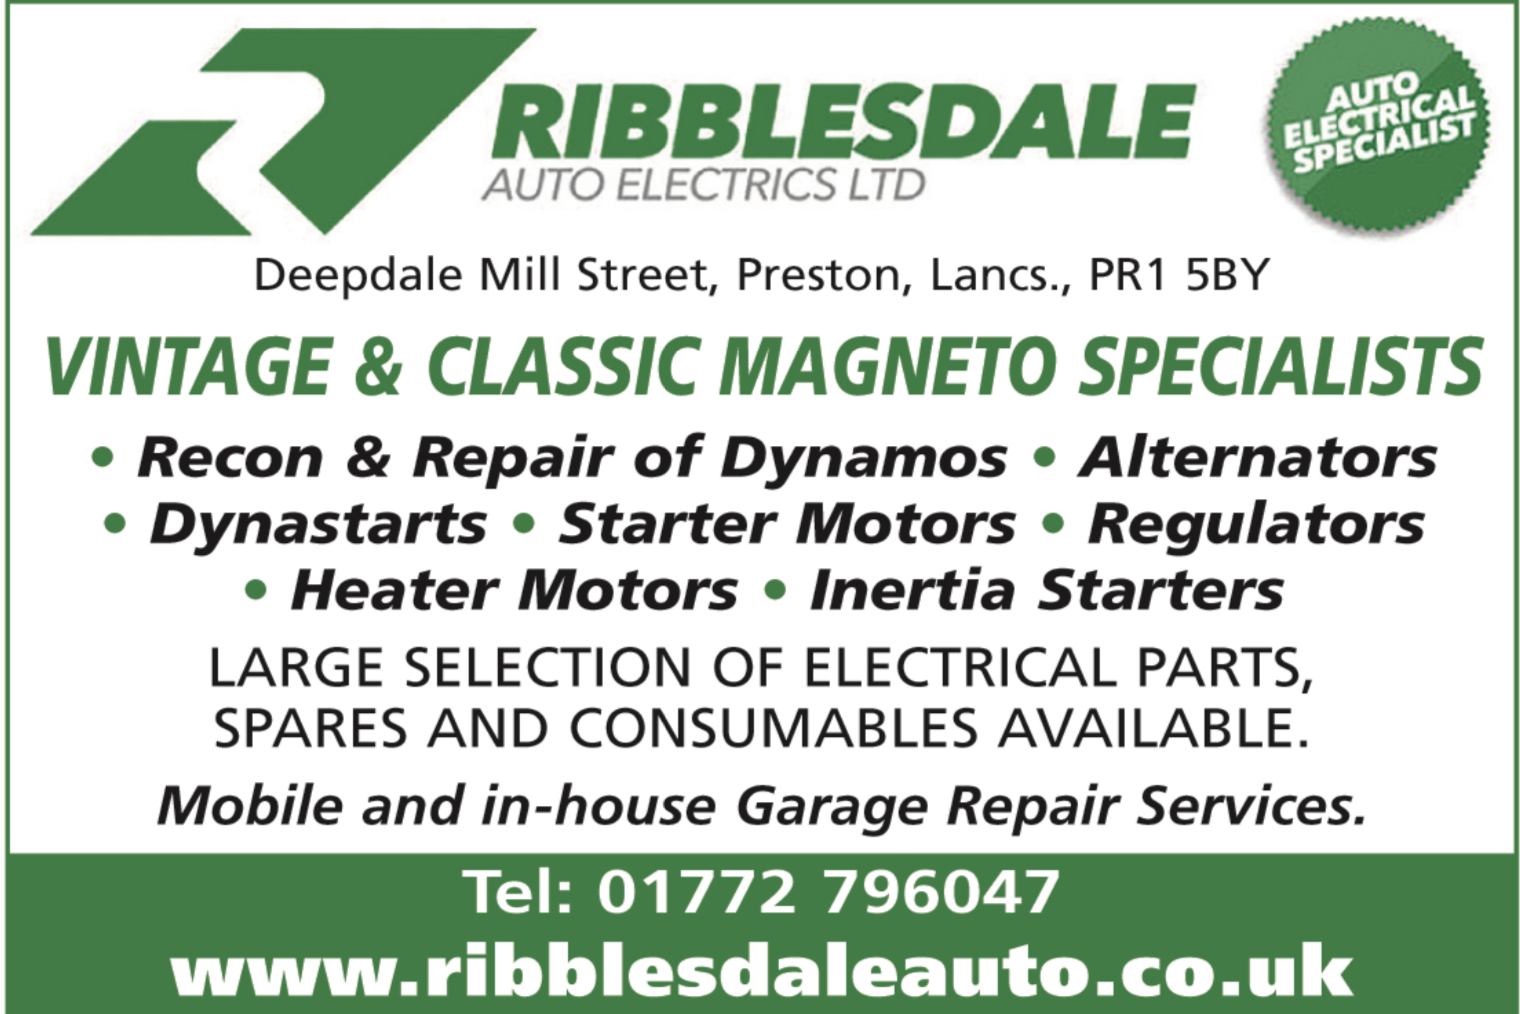 Ribblesdale Auto Electrics - Vintage & classic Magneto Specialists, recon and repair dynamos, alternators, heaters, starter motors,